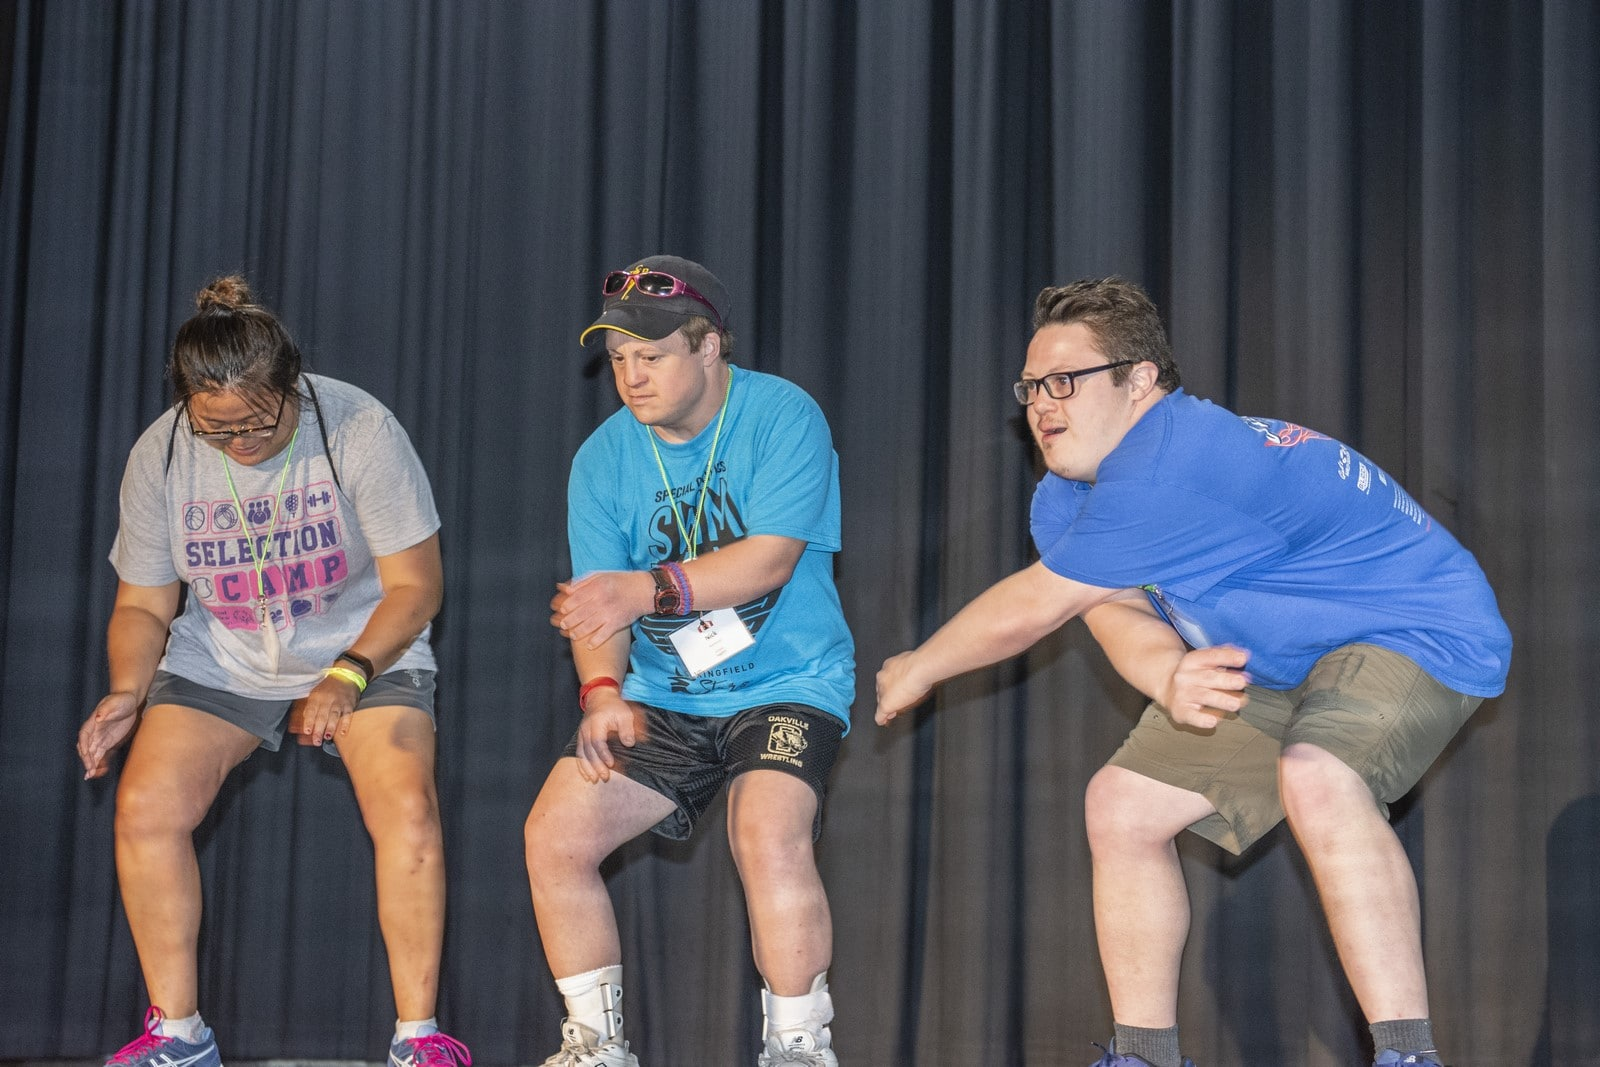 Three athletes perform on a stage during a talent show